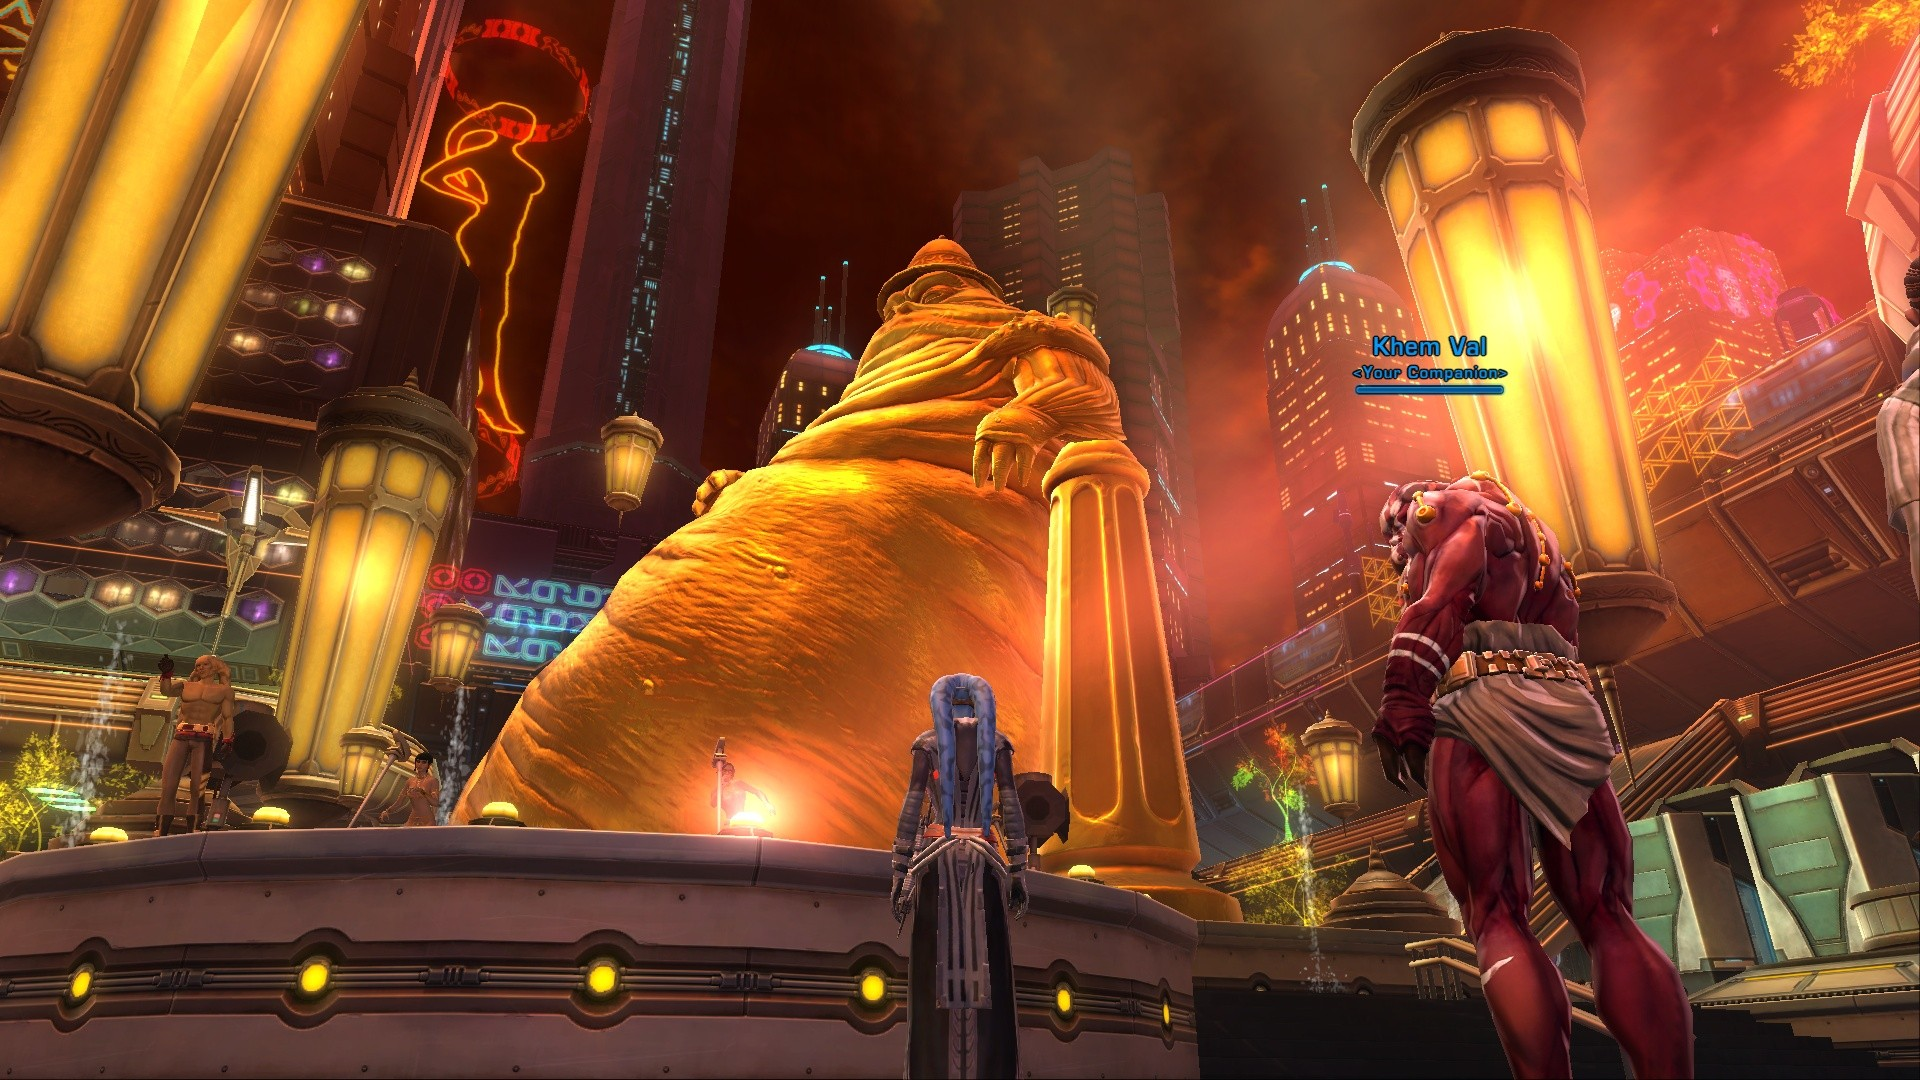 Star Wars: The Old Republic - Seeing a monument of that size for vanity purposes, angers me. Which seems to work out pretty good since I'm a Sith.